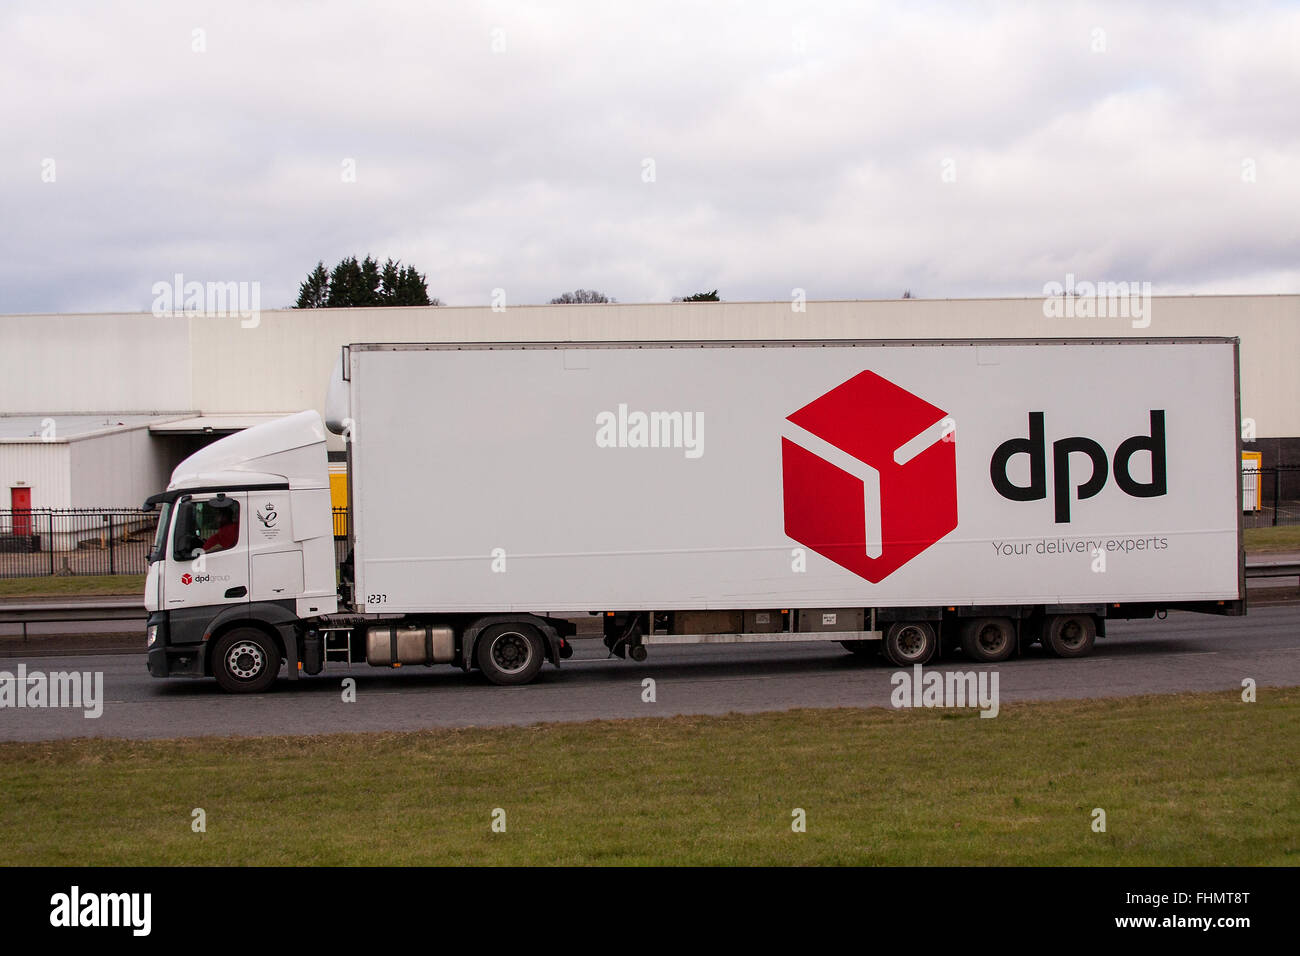 Dpd Lorry Stock Photos & Dpd Lorry Stock Images - Alamy